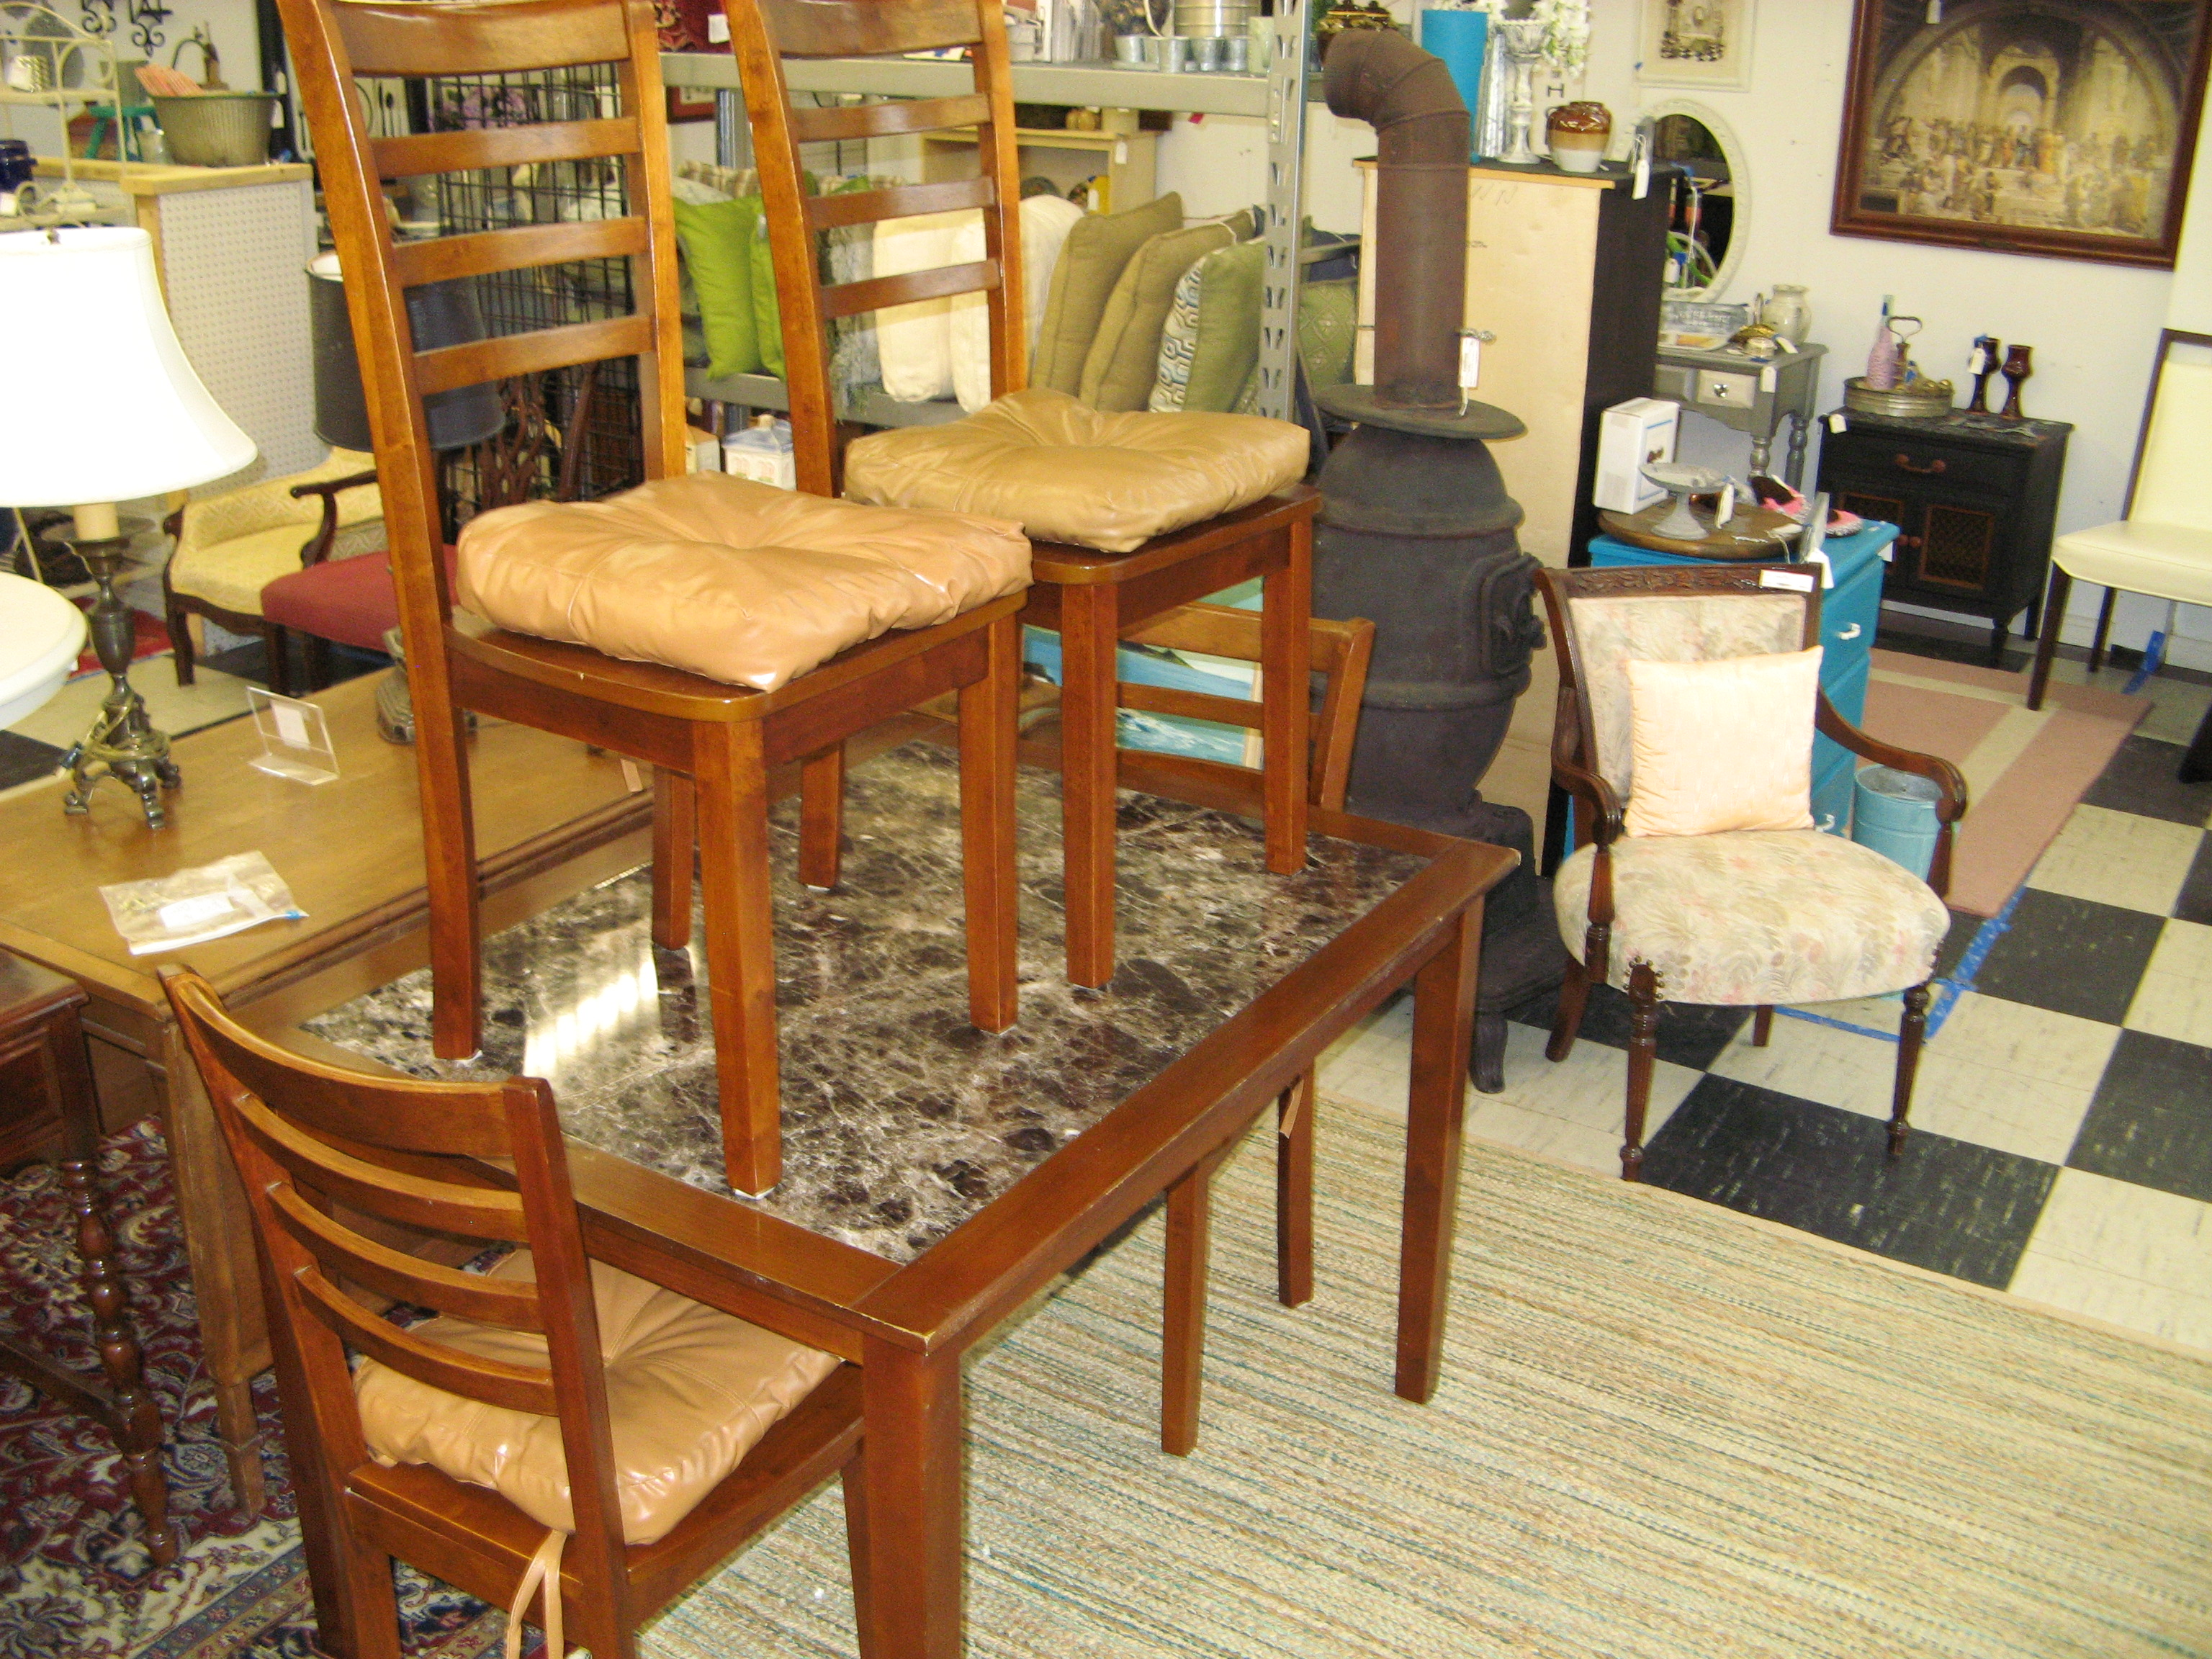 Faux Marble Top Dining Table w/ 4 Chairs